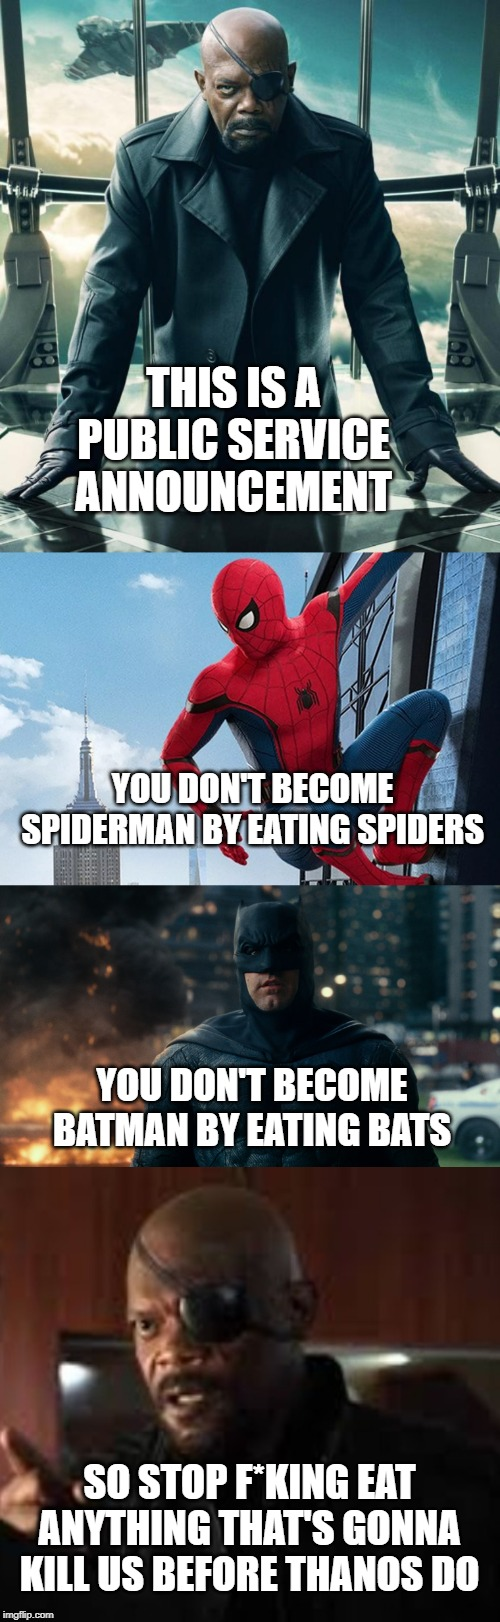 THIS IS A PUBLIC SERVICE ANNOUNCEMENT SO STOP F*KING EAT ANYTHING THAT'S GONNA KILL US BEFORE THANOS DO YOU DON'T BECOME SPIDERMAN BY EATING | image tagged in nick fury,angry nick fury | made w/ Imgflip meme maker